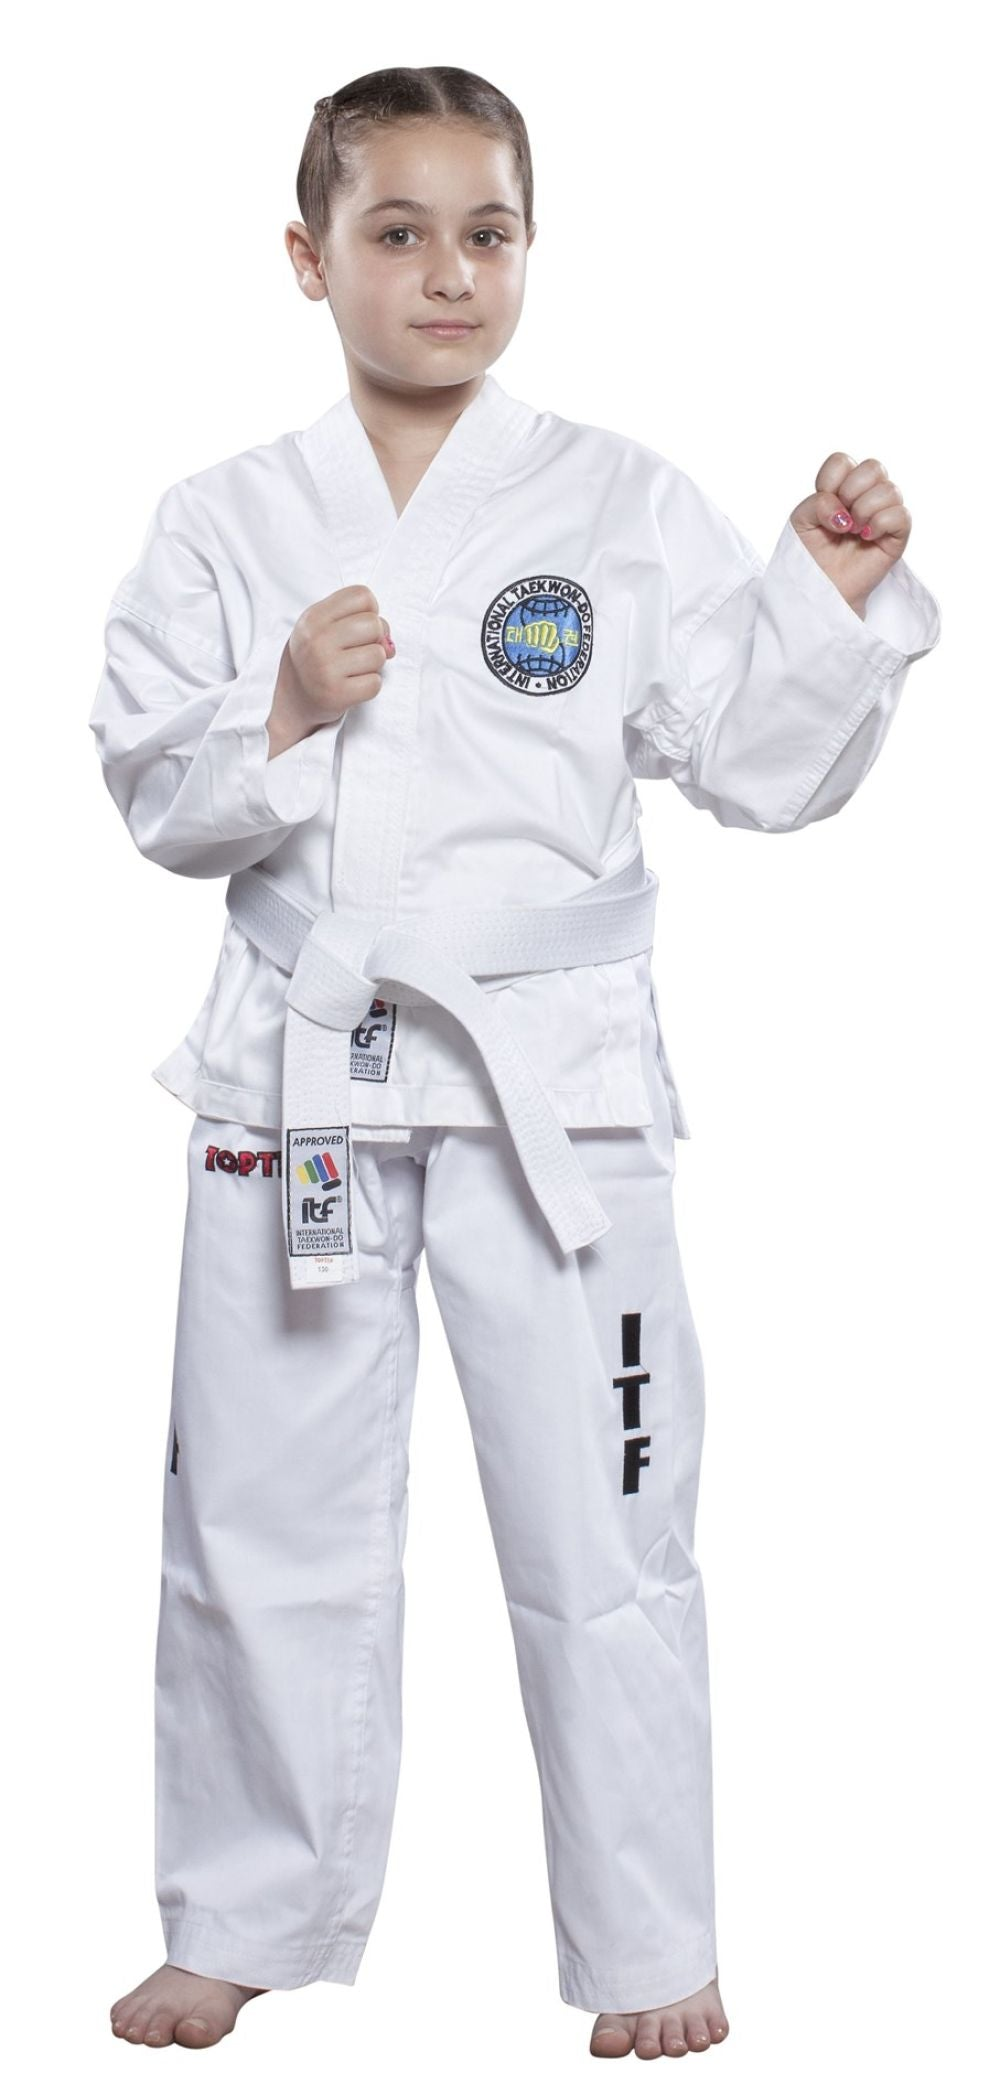 Top Ten ITF KYONG student uniform - Embroidered - White Dobok